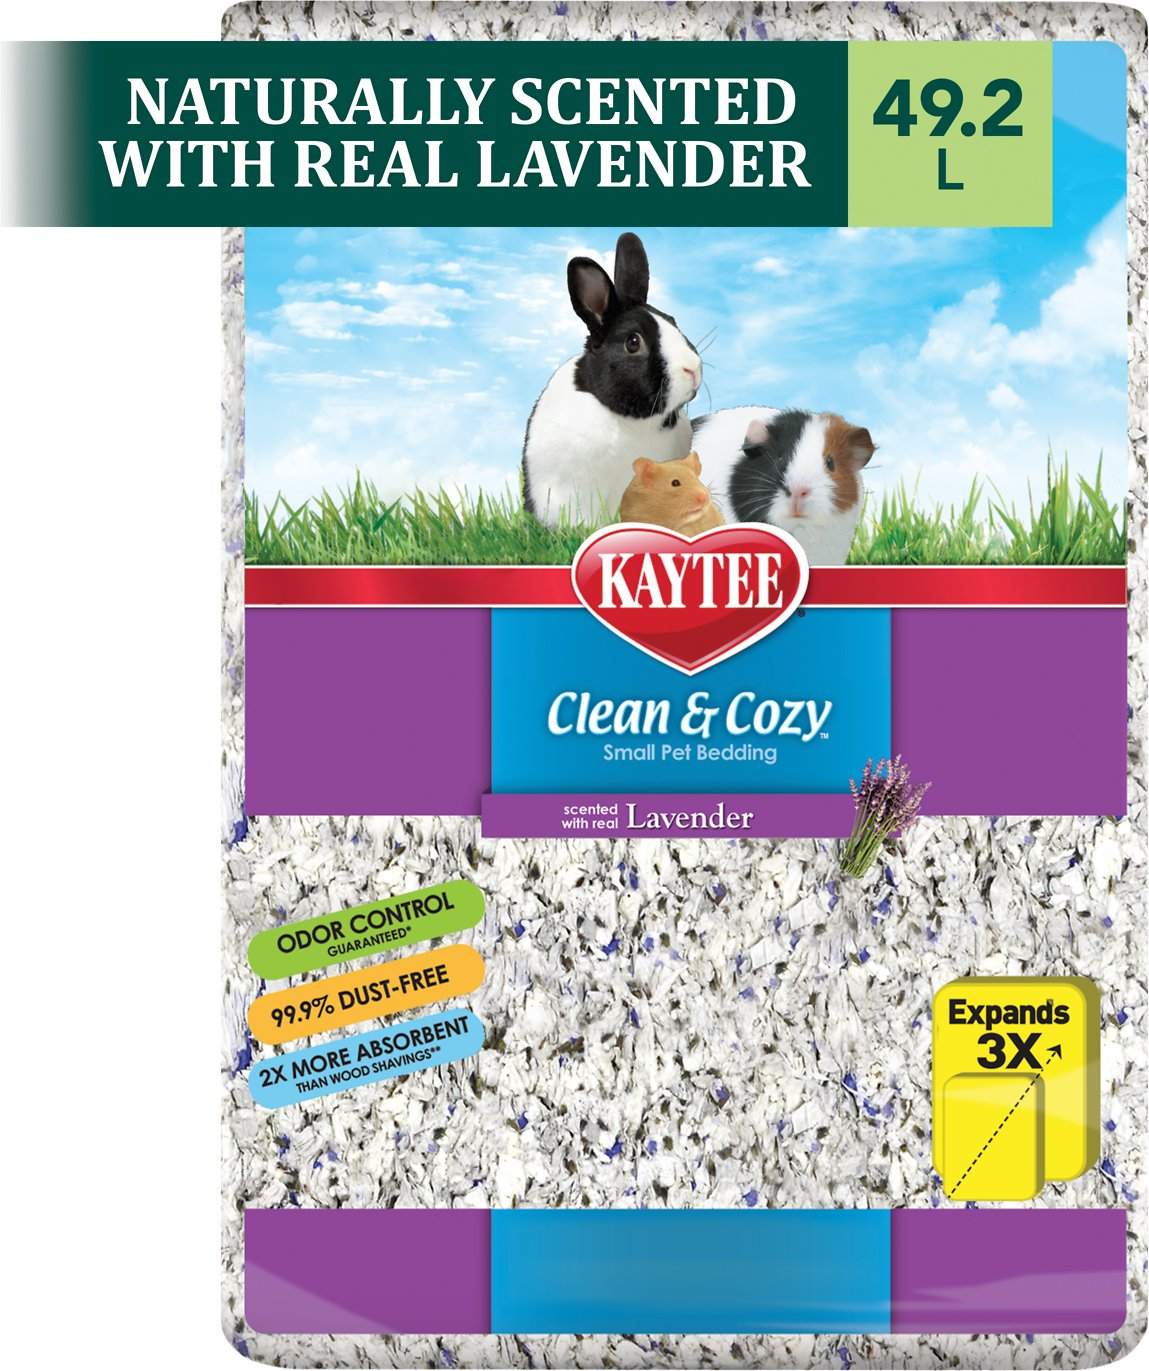 kaytee clean & cozy scented small animal bedding, lavender, 49.2-l